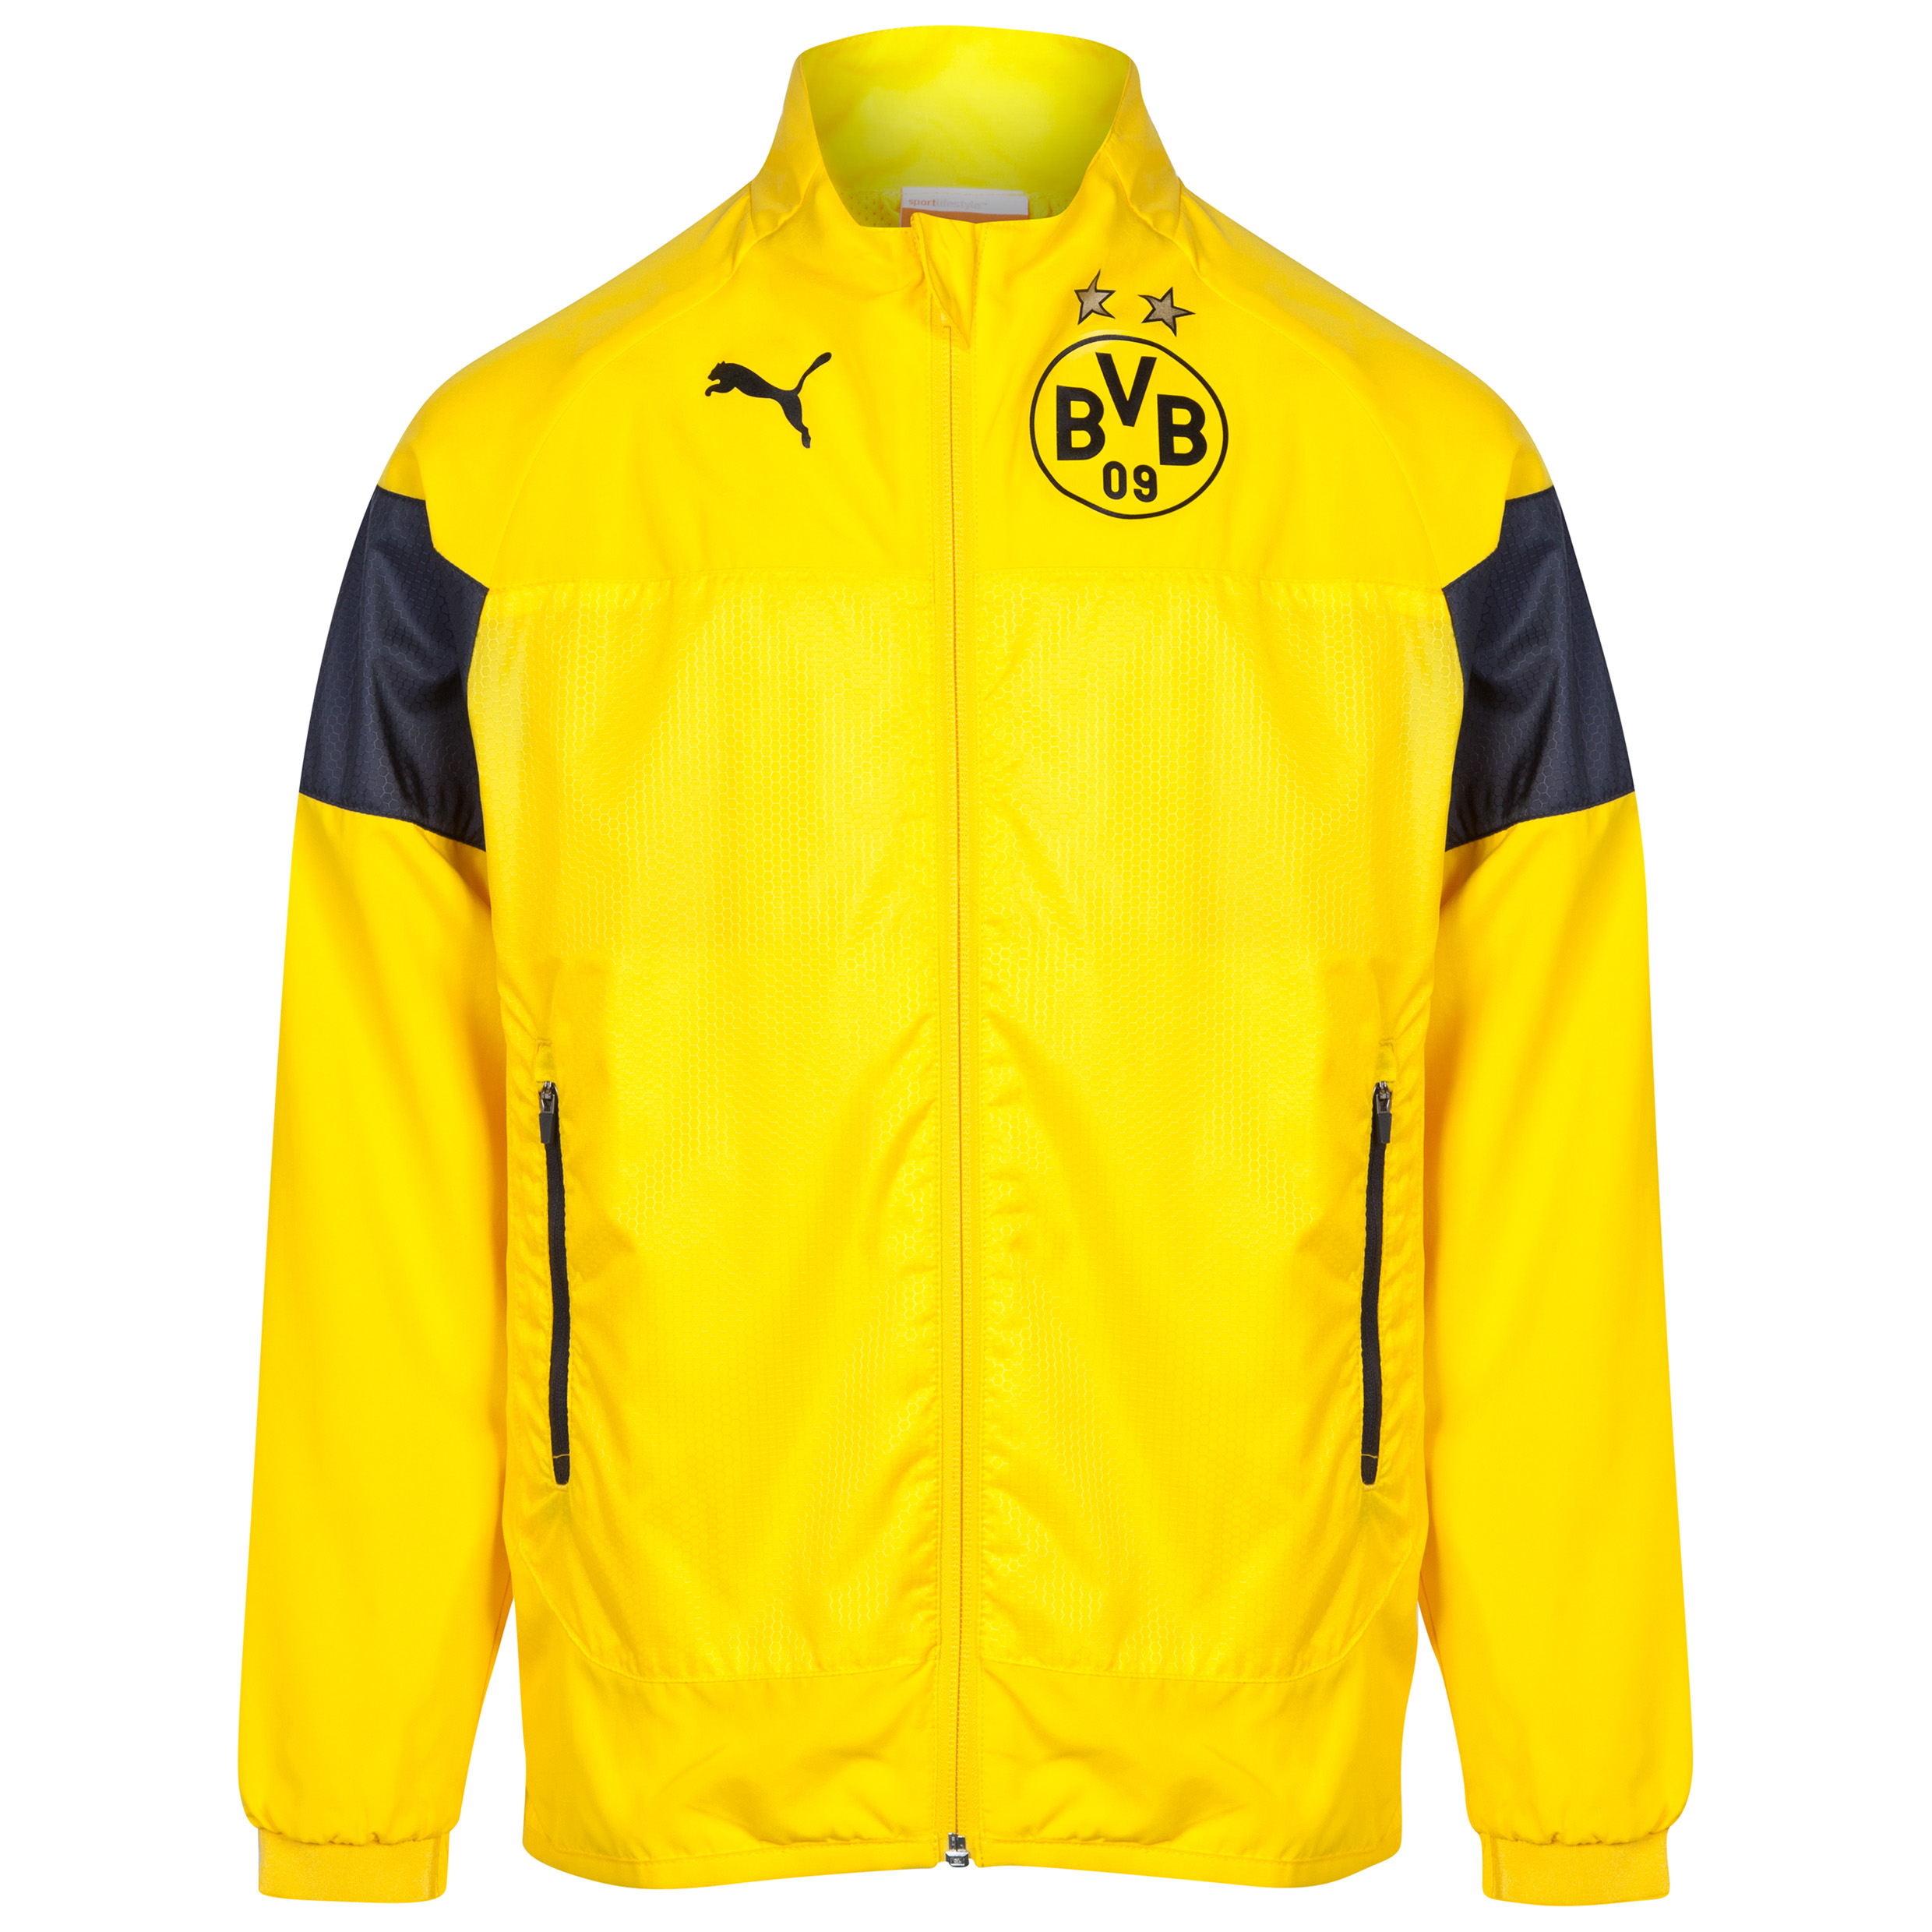 BVB Leisure Jacket - Kids